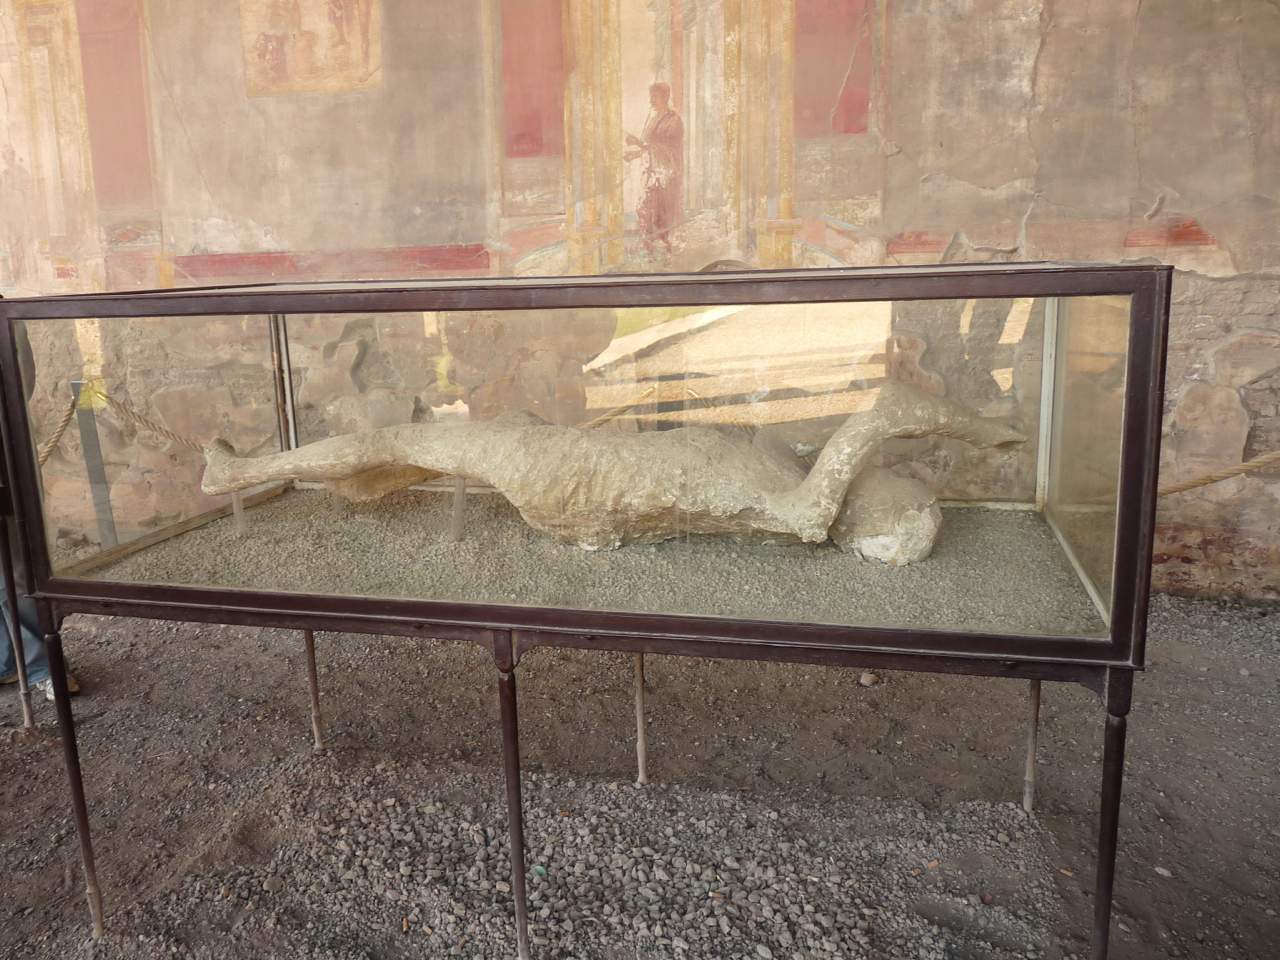 Plastered body of pompeii victim